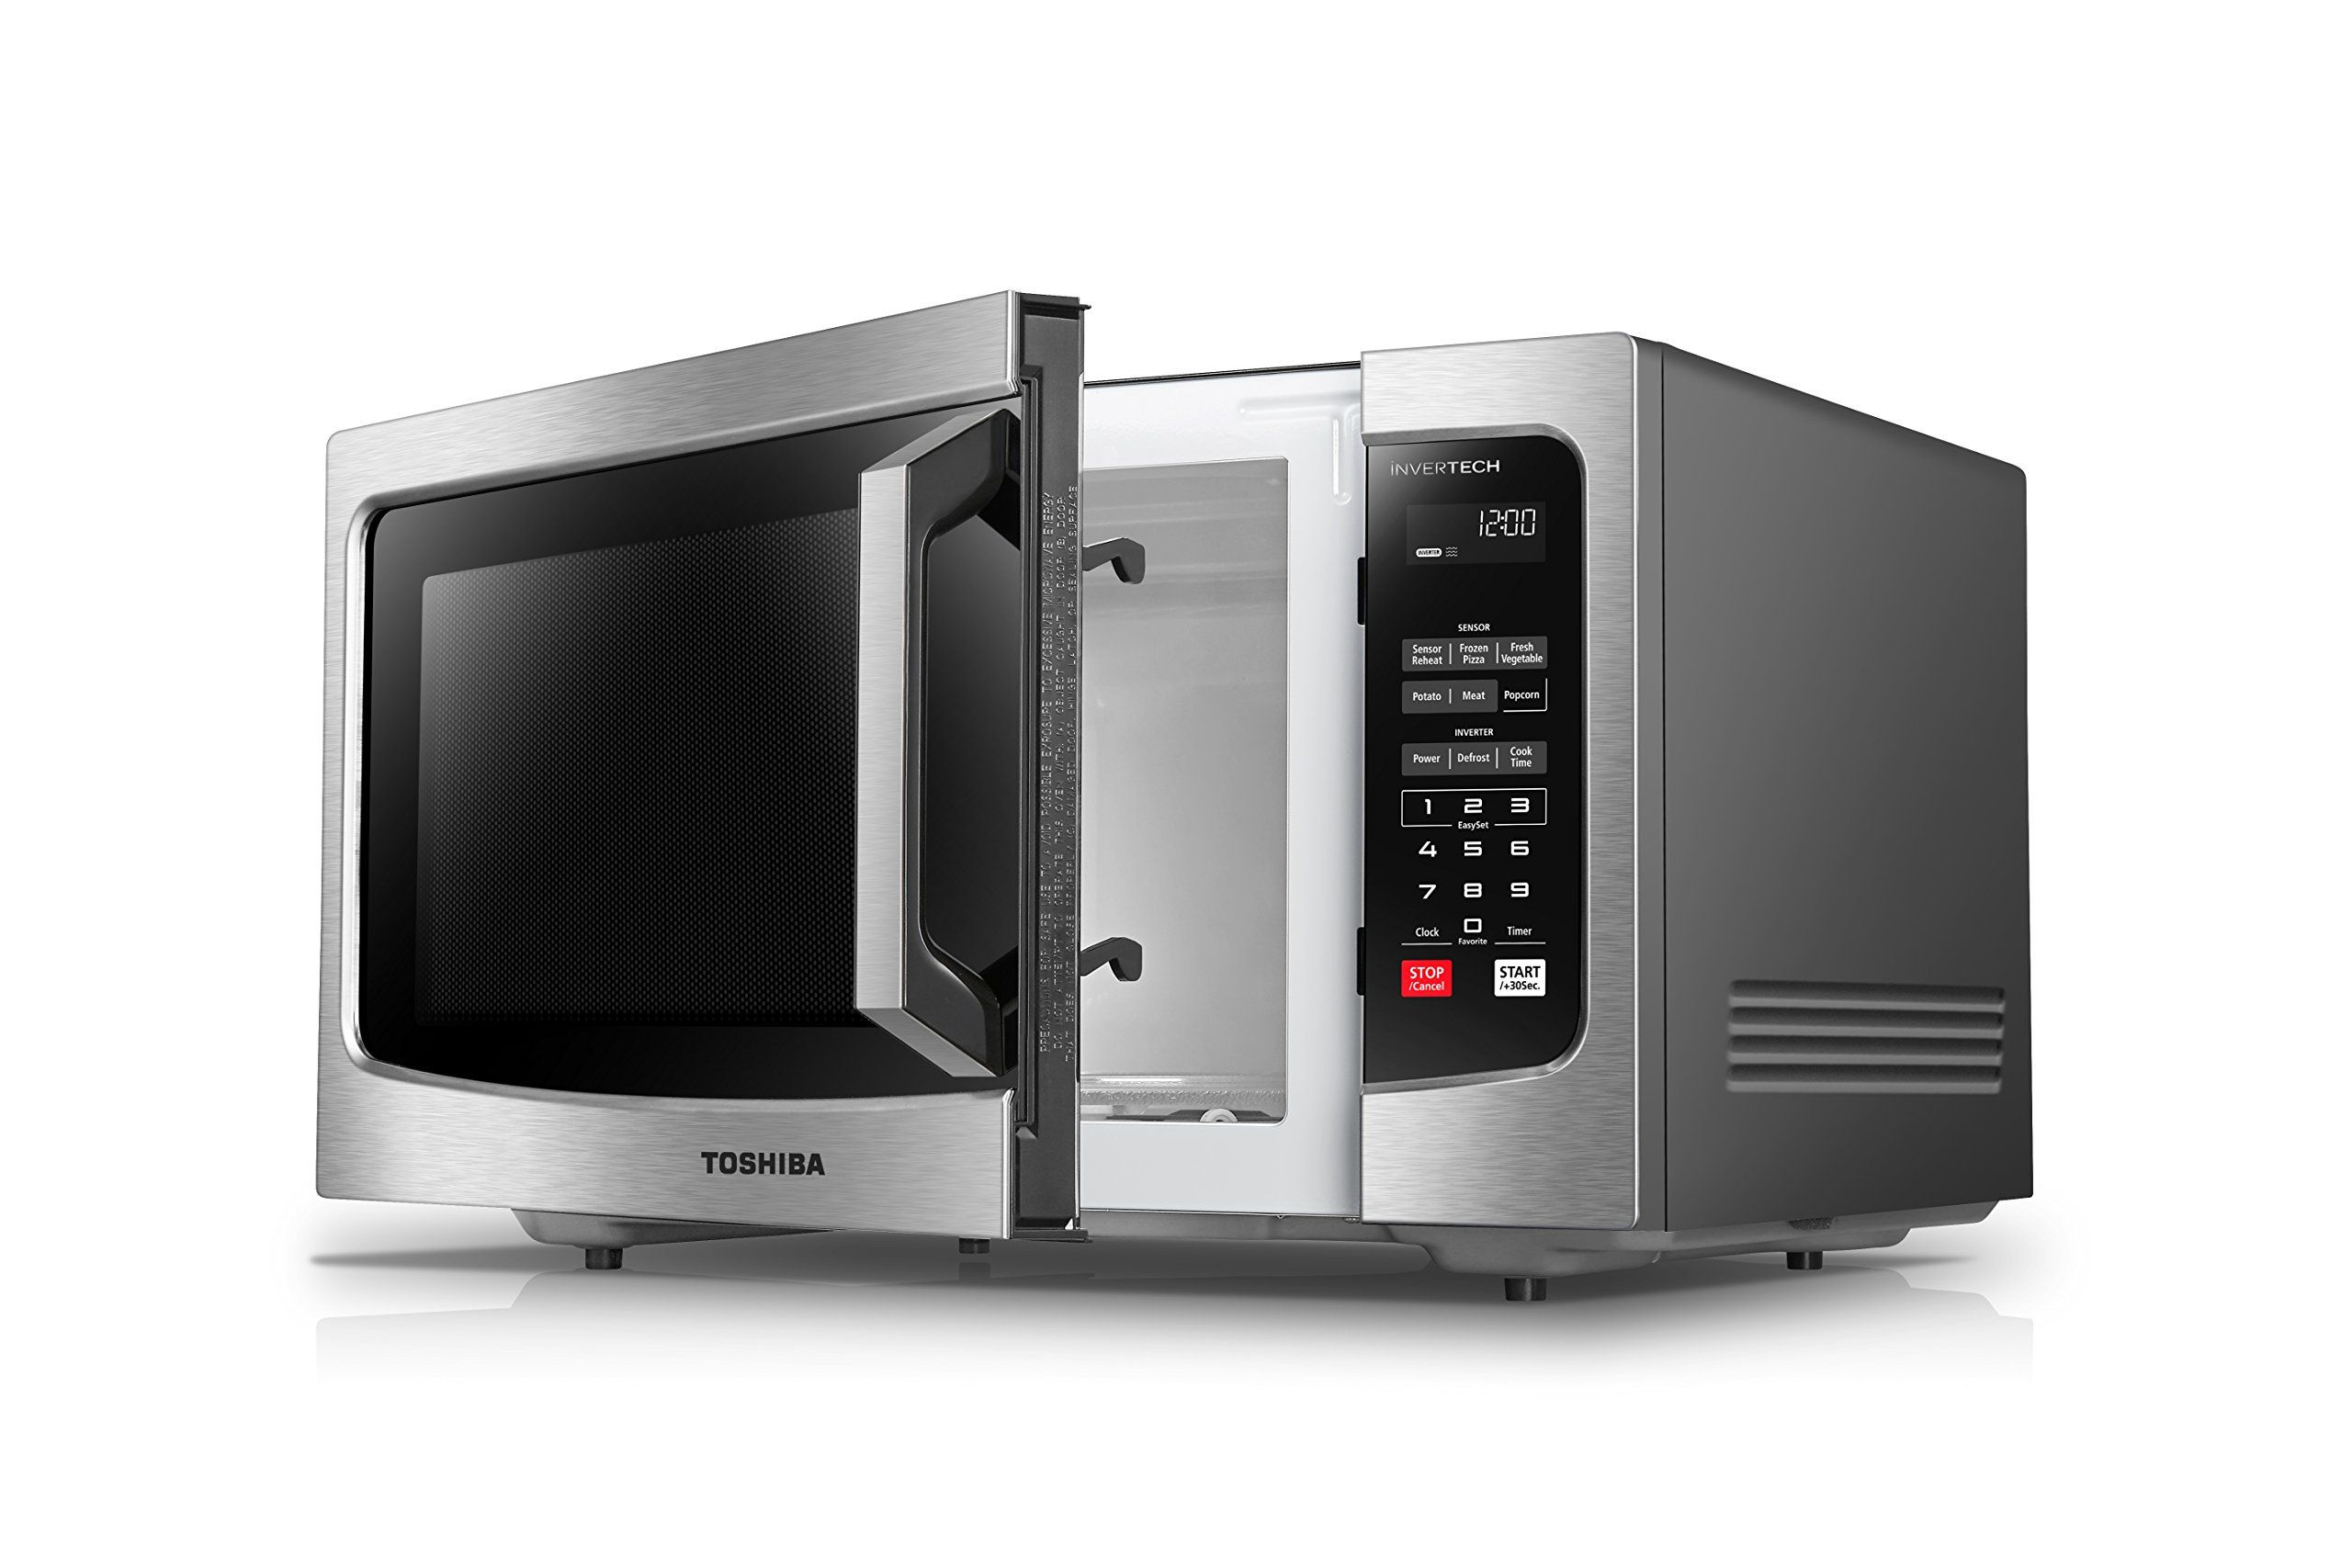 Toshiba Em245a5css Microwave Oven With Inverter Technology Lcd